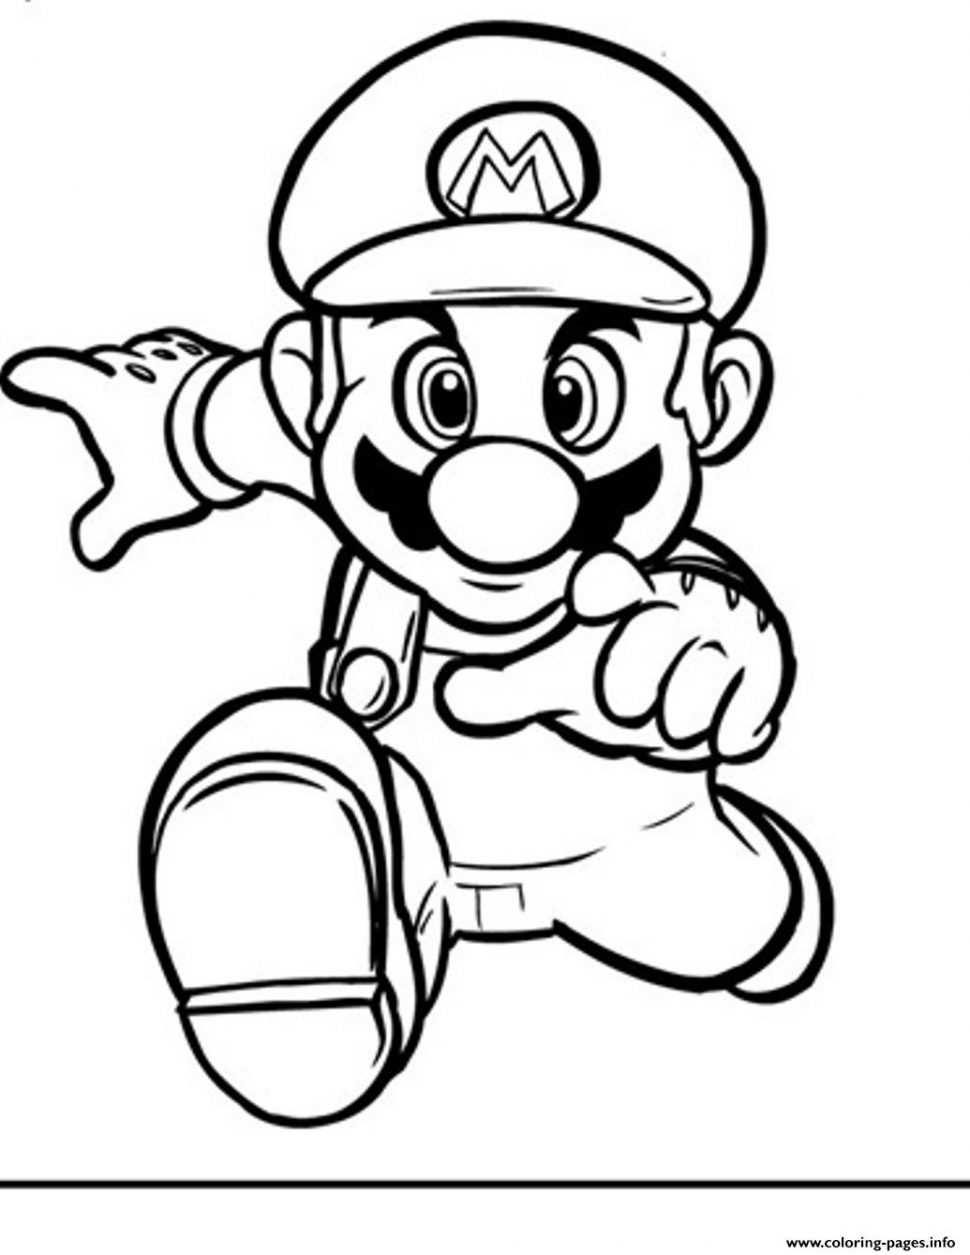 Mario Cartoon Drawing At GetDrawings